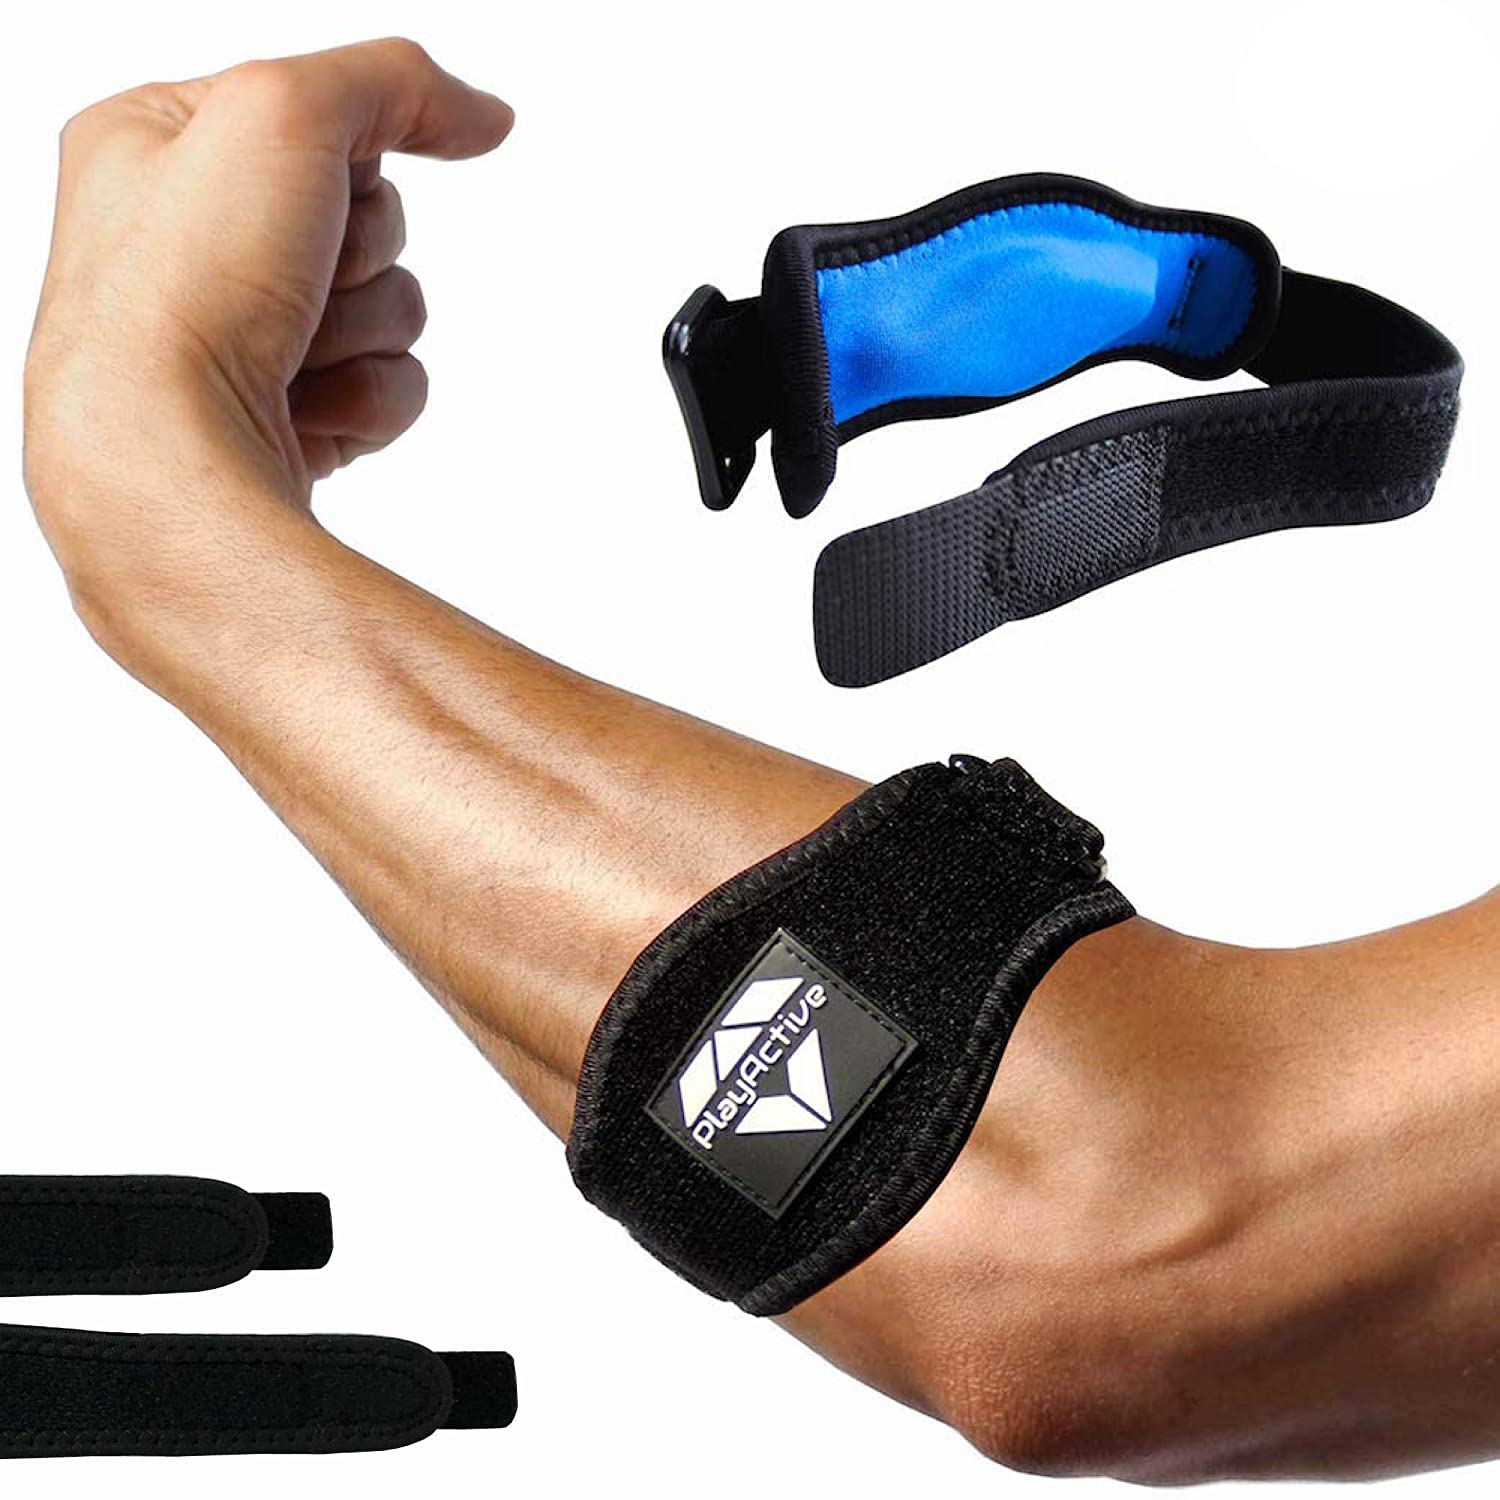 a8e383b0e9 Amazon.com: Tennis Elbow Brace (2+2 Pack) for Tendonitis - Best Tennis &  Golfer's Elbow Strap Band with Compression Pad - Relieves Forearm Pain -  Includes ...